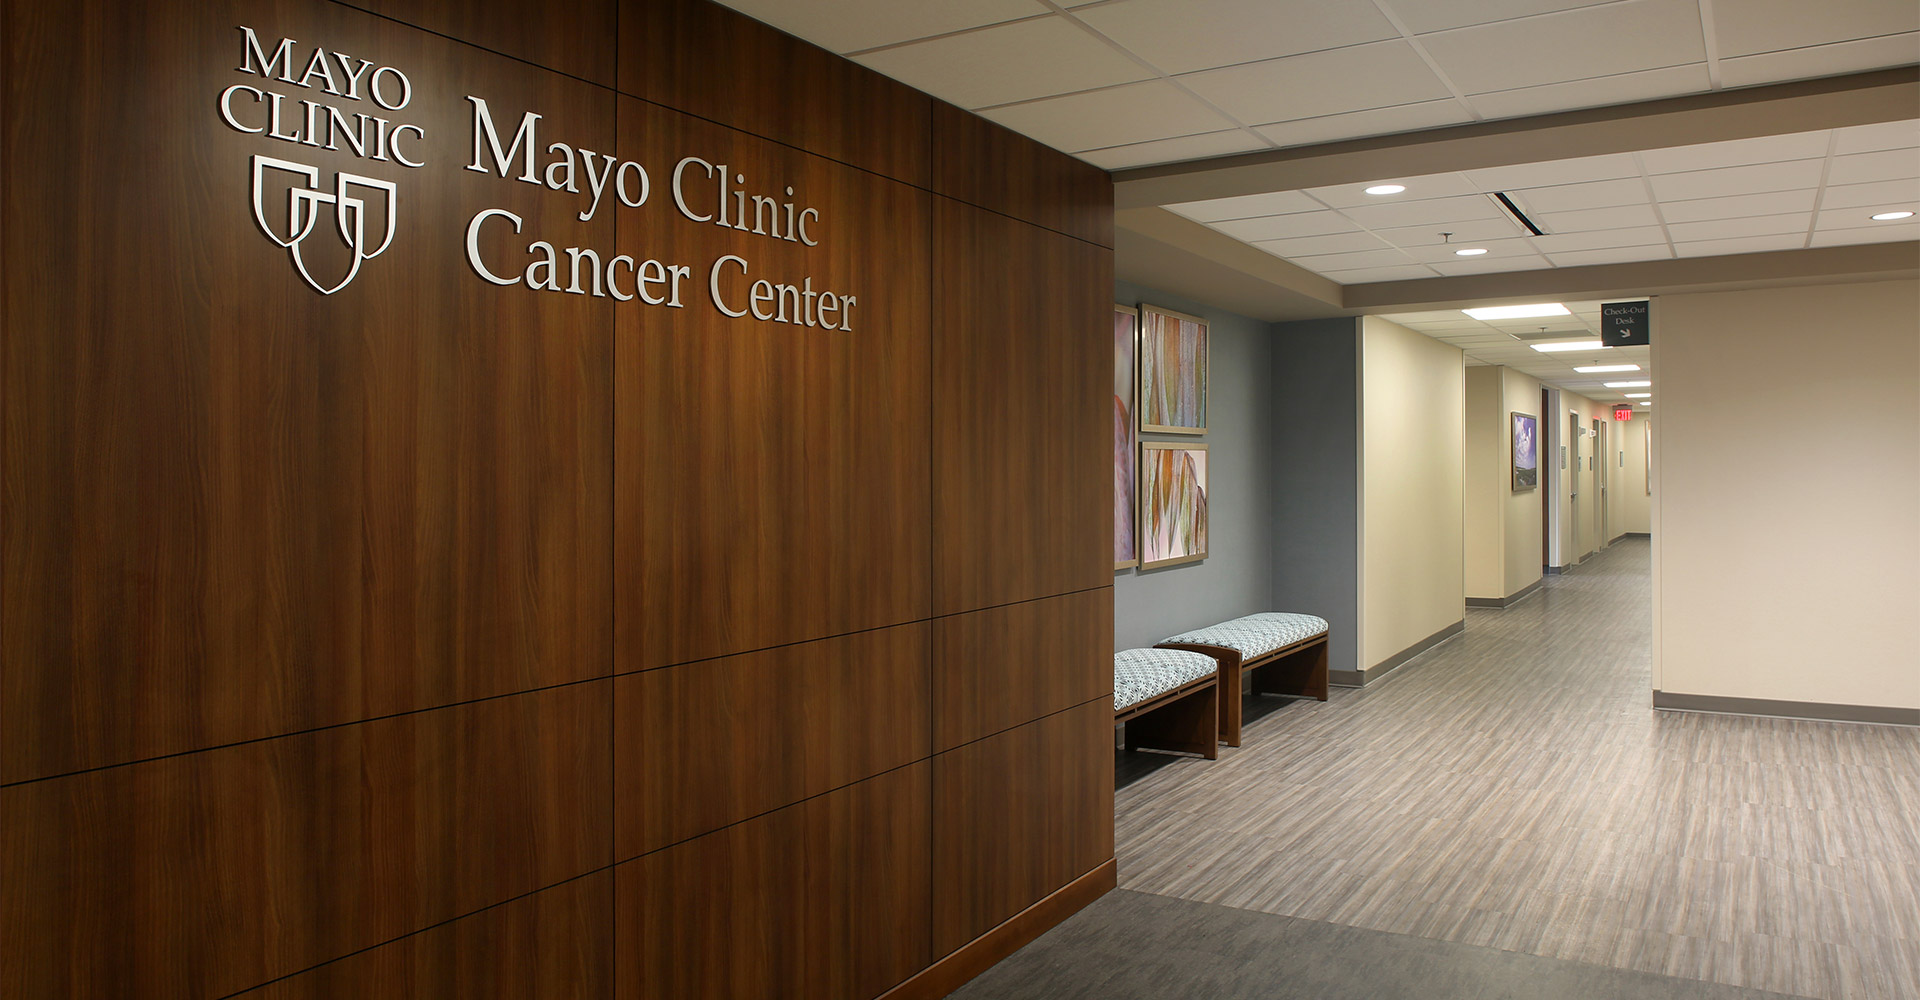 Rendering of Mayo Clinic Cancer Center.